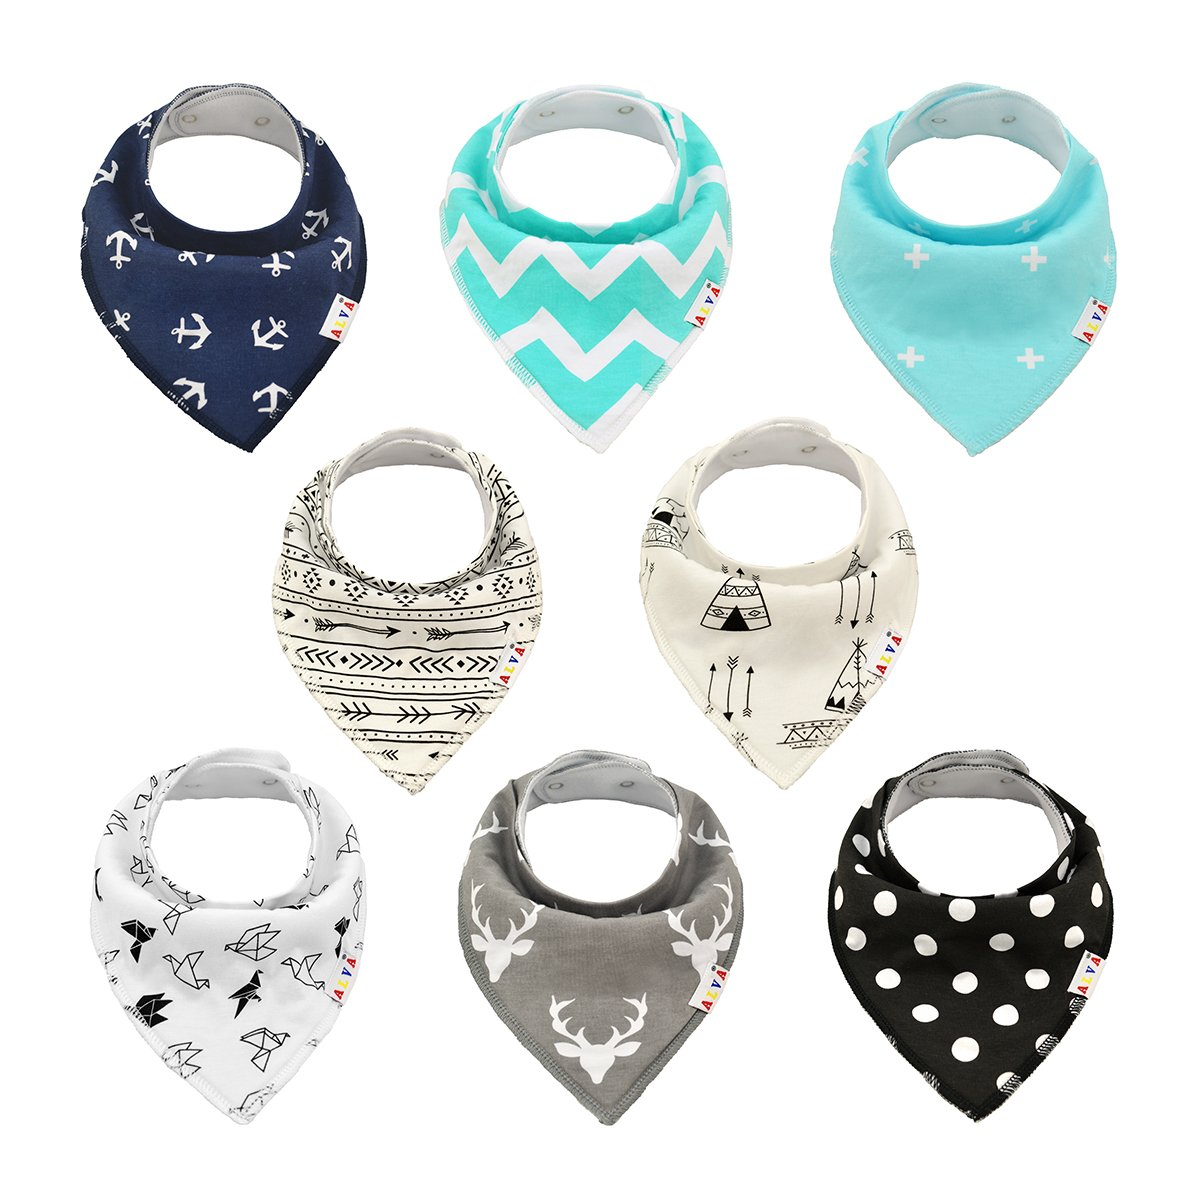 Alva Baby Unisex 8 Pack of Super Absorbent Baby Bandana Drool Teething Bibs for Boys and Girls, Best Baby Shower Gifts Set (Sets SKX02, All in one) Alvababy SKX02-565